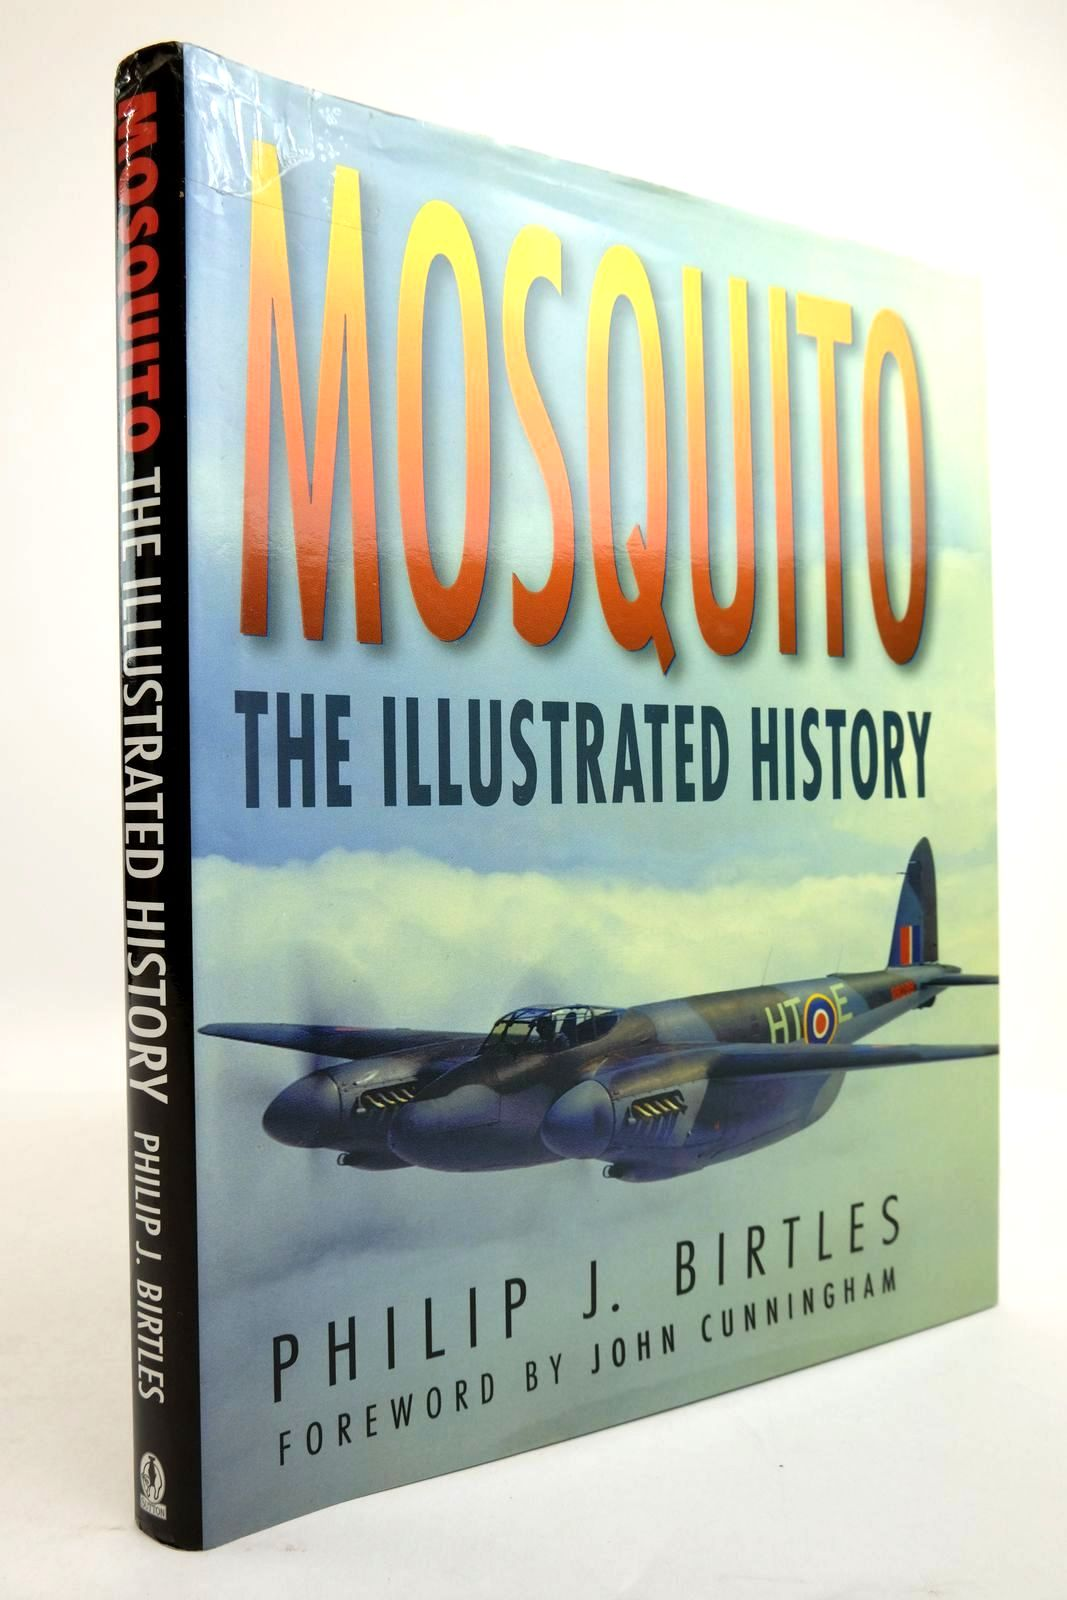 Photo of MOSQUITO THE ILLUSTRATED HISTORY written by Birtles, Philip J. published by Sutton Publishing (STOCK CODE: 2134465)  for sale by Stella & Rose's Books